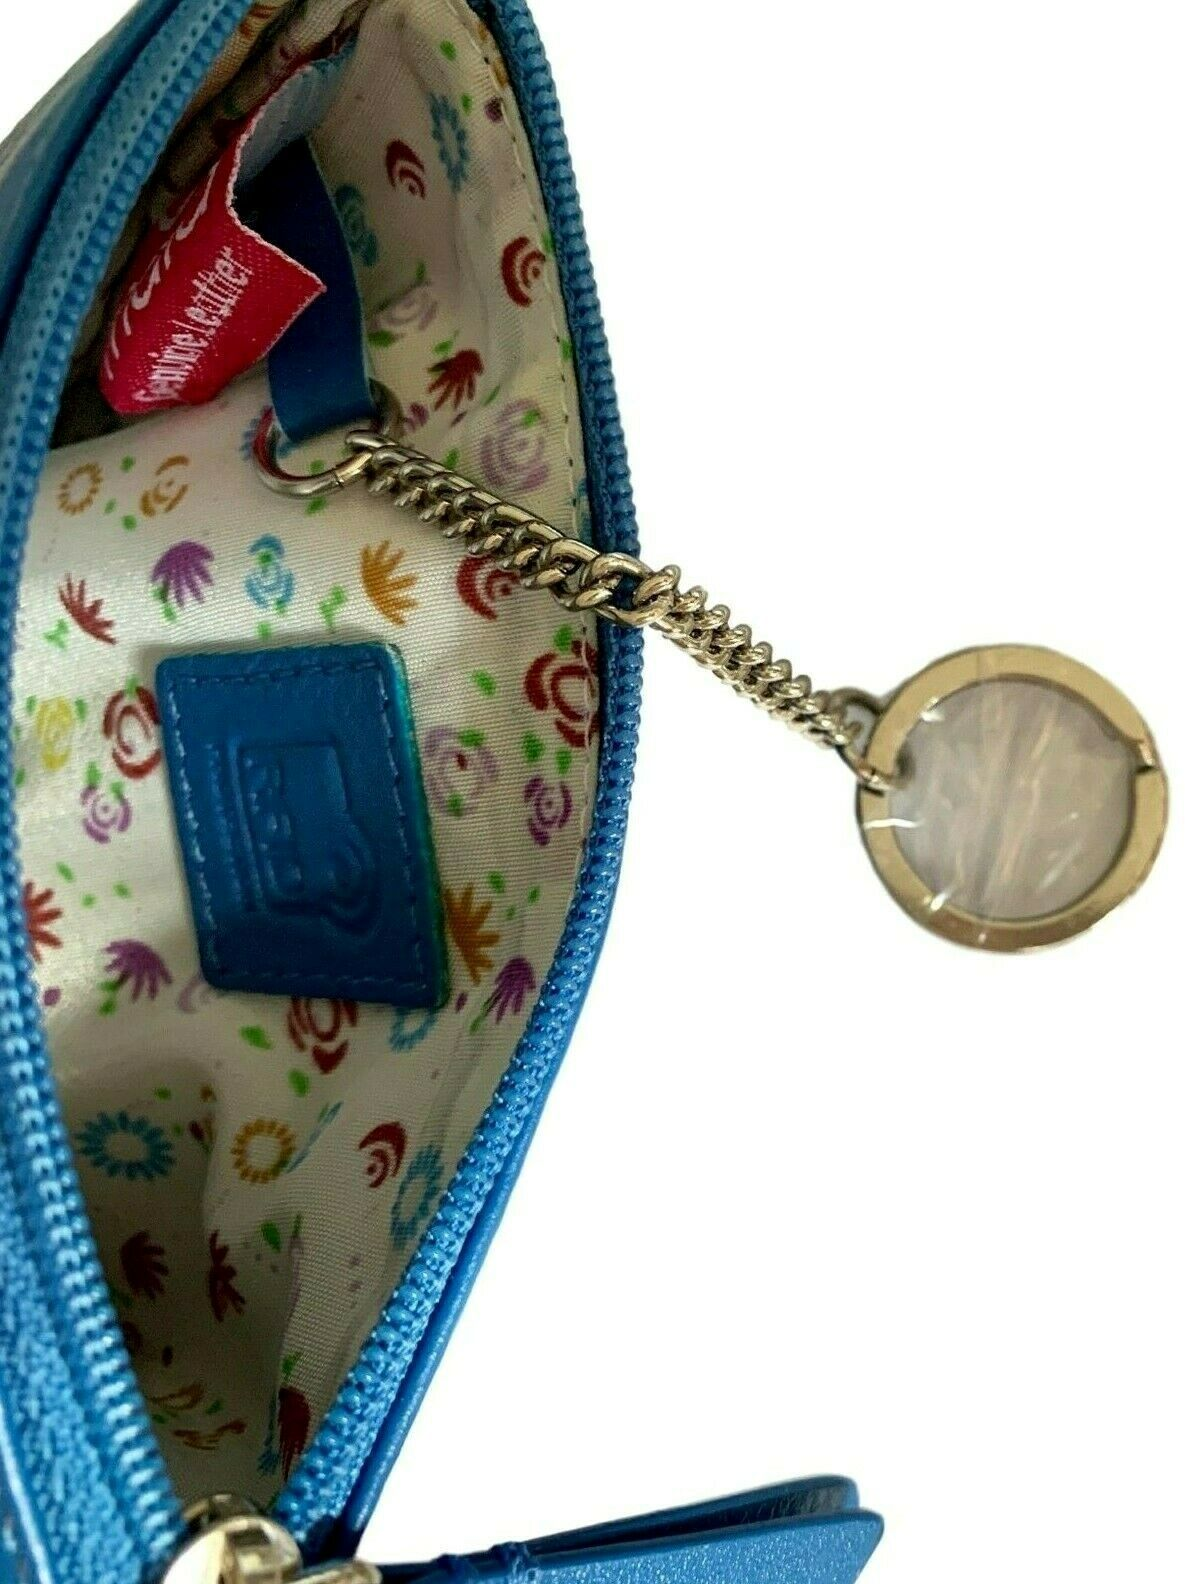 Highland Cow Purse Small Blue Soft Leather RFID Coin Money Pouch Ladies Girls